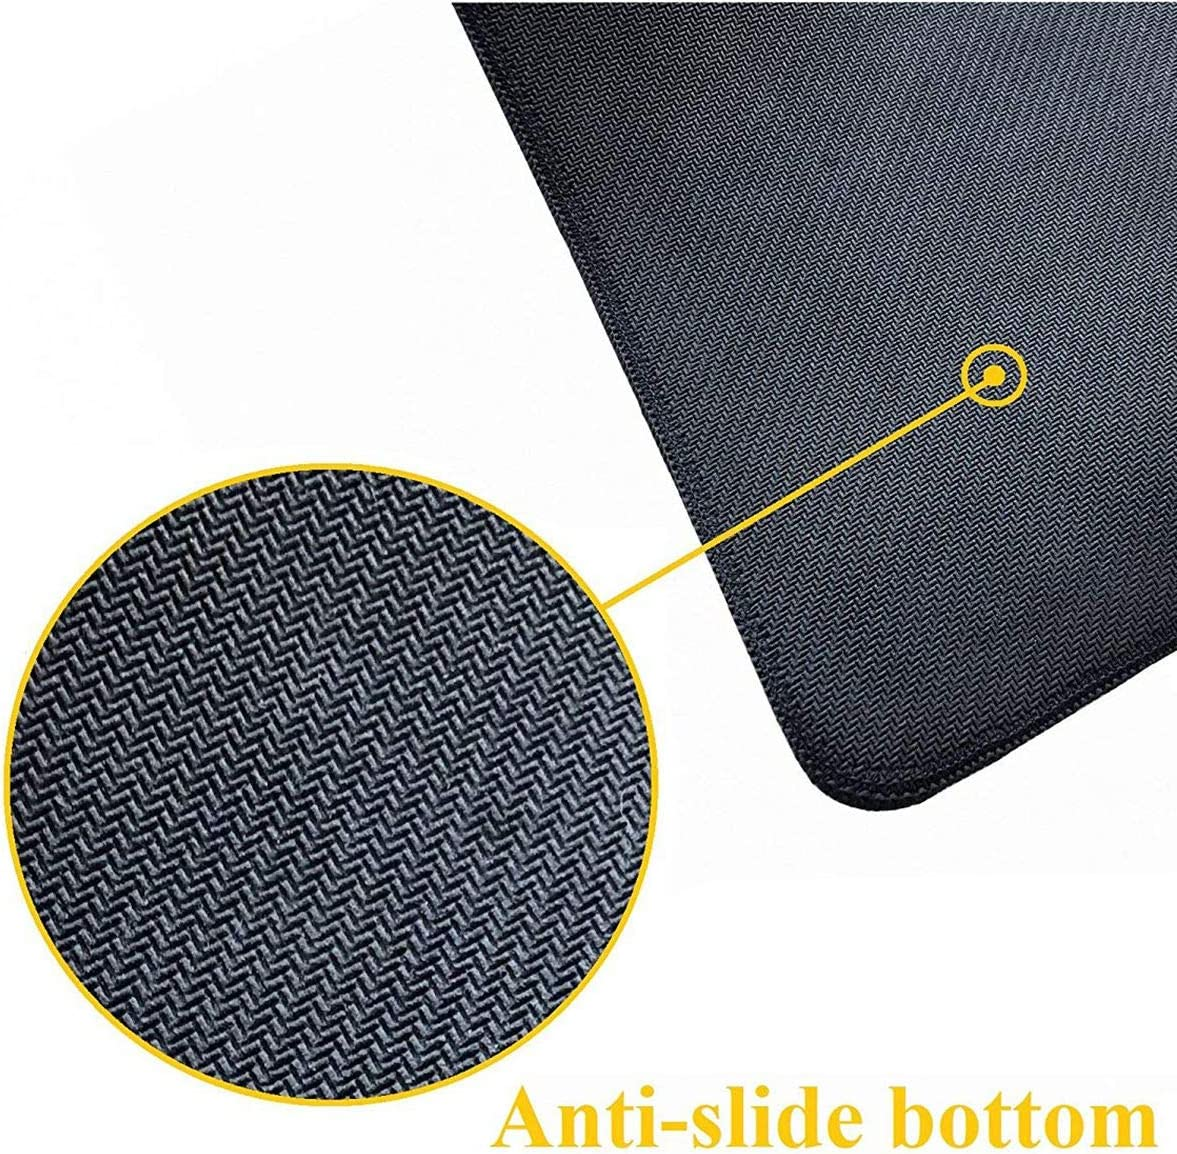 Office /& Home Waterproof Desk Pad Keyboard Mat with Non-Slip Base for Work /& Gaming 29.5x15.7In Extended Gaming Mouse Pad with Stitched Edges-Drummer Large XXL Professional Mousepad